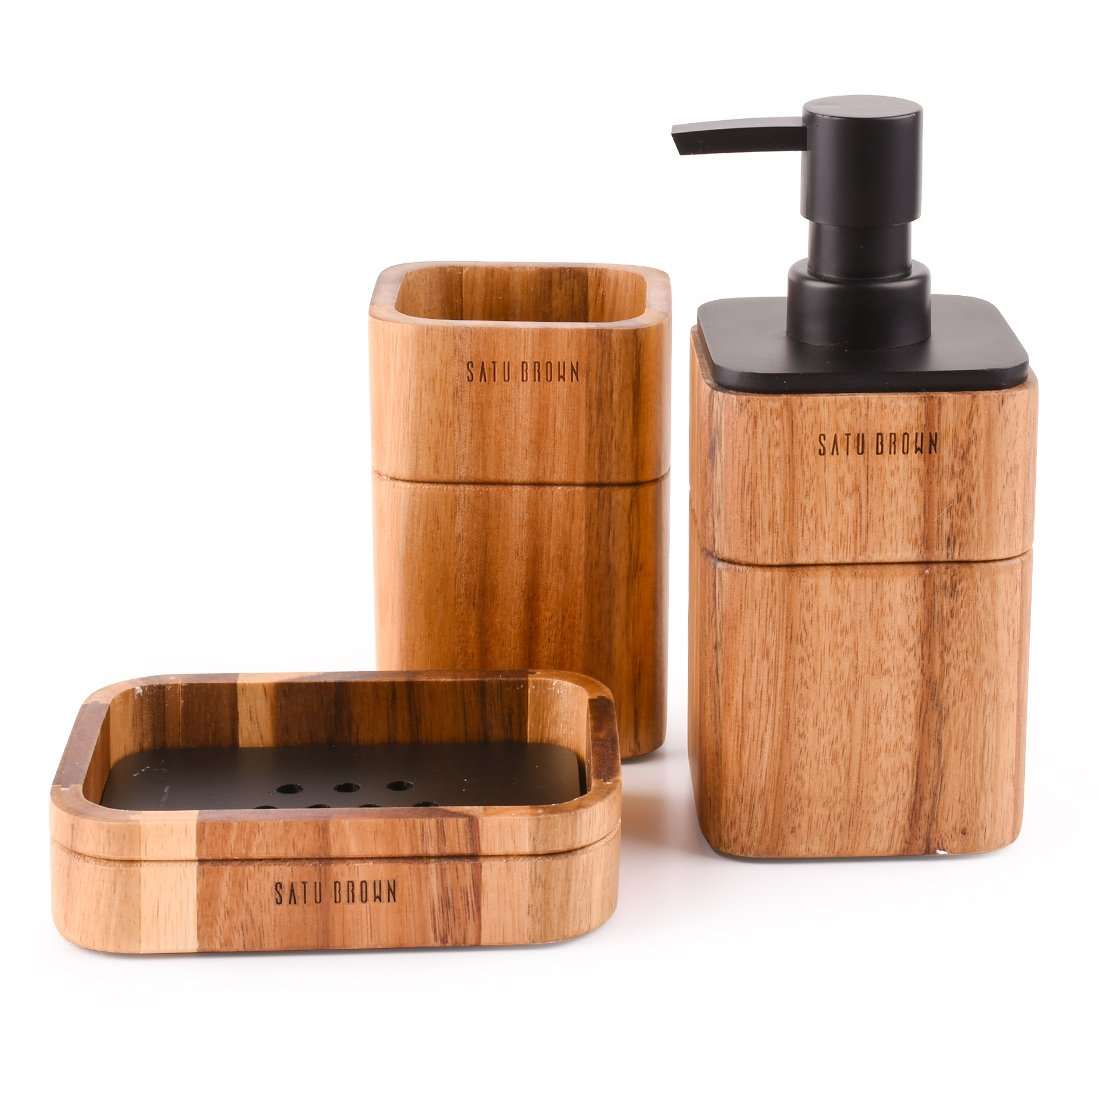 Satu Brown Bathroom Accessory Set Acacia Wood 3 Pieces Includes Bathroom Soap Dispenser, Bathroom Tumbler, Soap Dish Accessories for Bathroom Decor and House Warming Gift